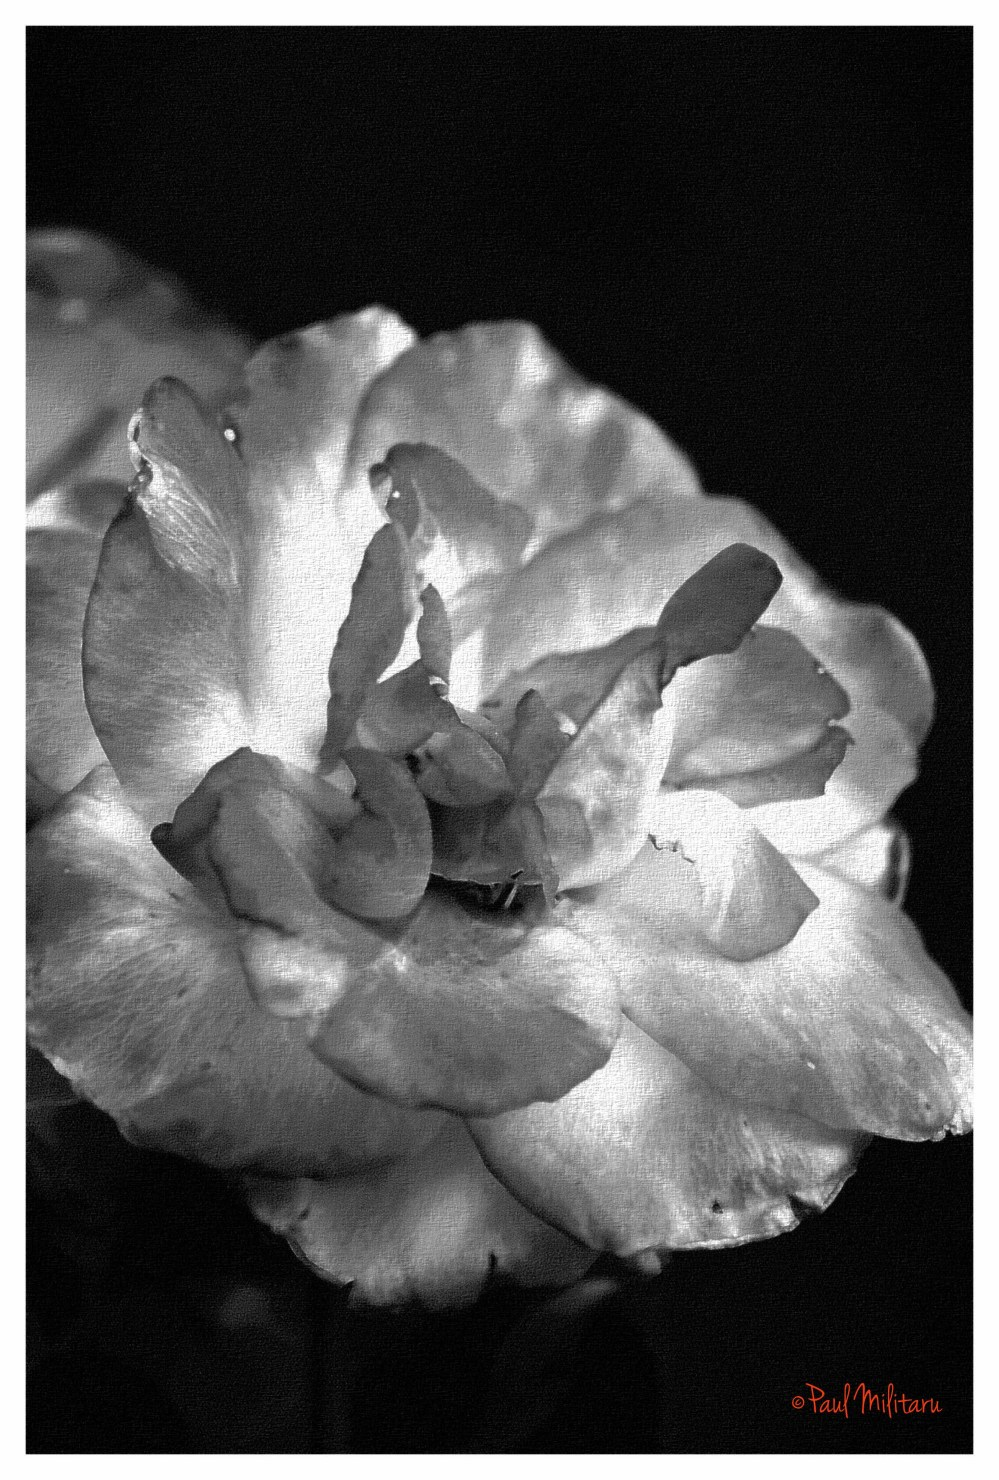 art - sketch of a rose in black and white